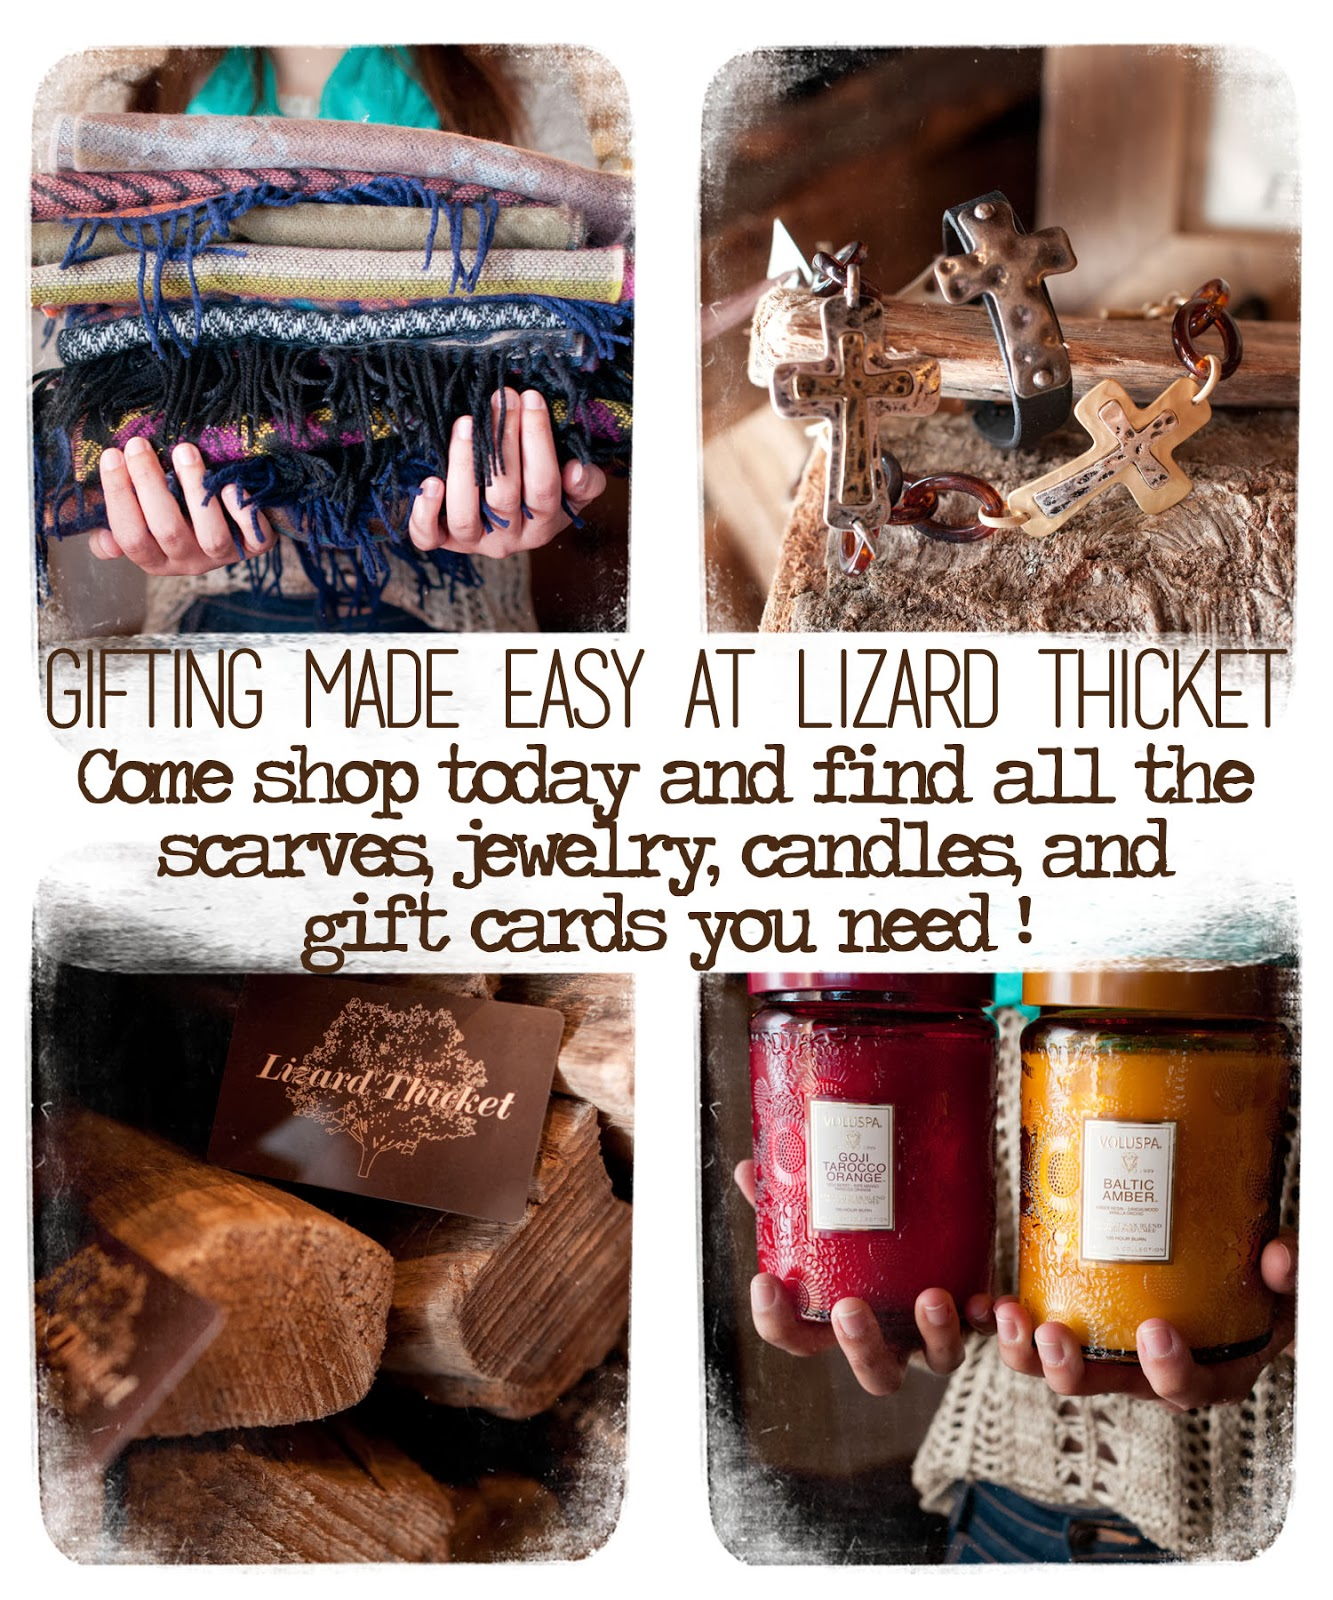 12 days ago· Lizard Thicket's stylish clientele can wear their clothing with the confidence that their wardrobe is as unique as they are. Lizard Thicket is rooted in style, growing in purpose.